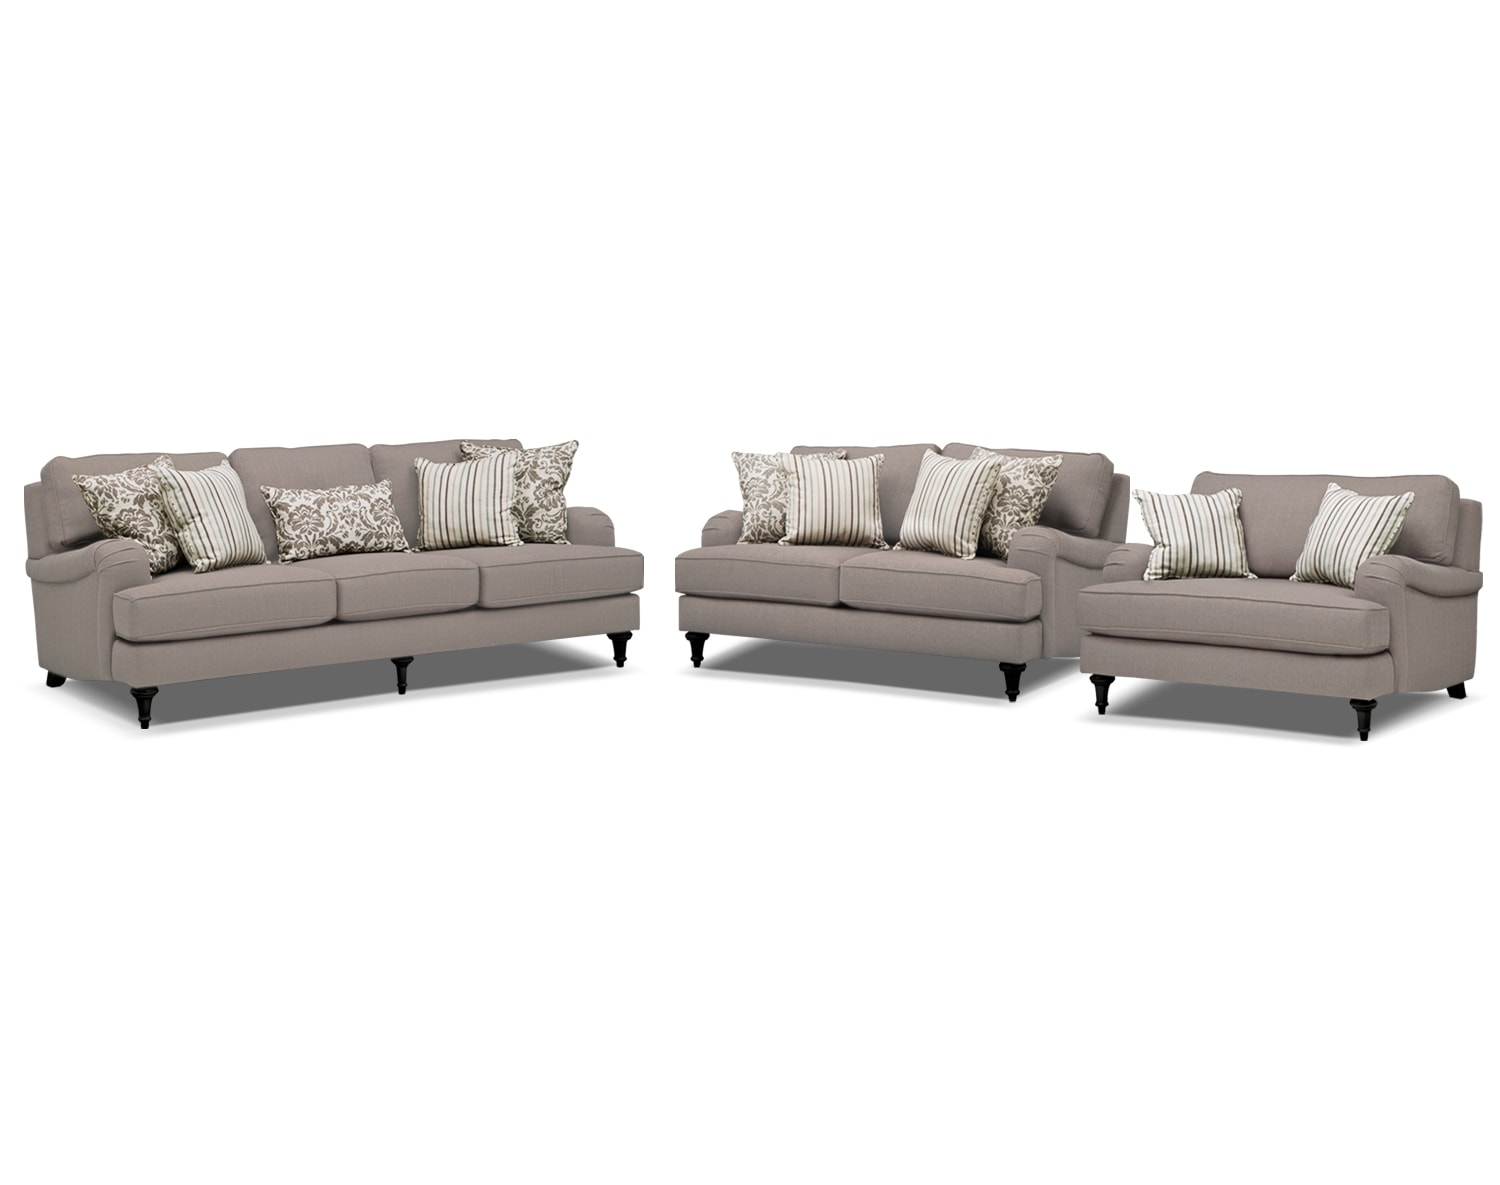 Value City Living Room Sets The Candice Collection Gray Value City Furniture